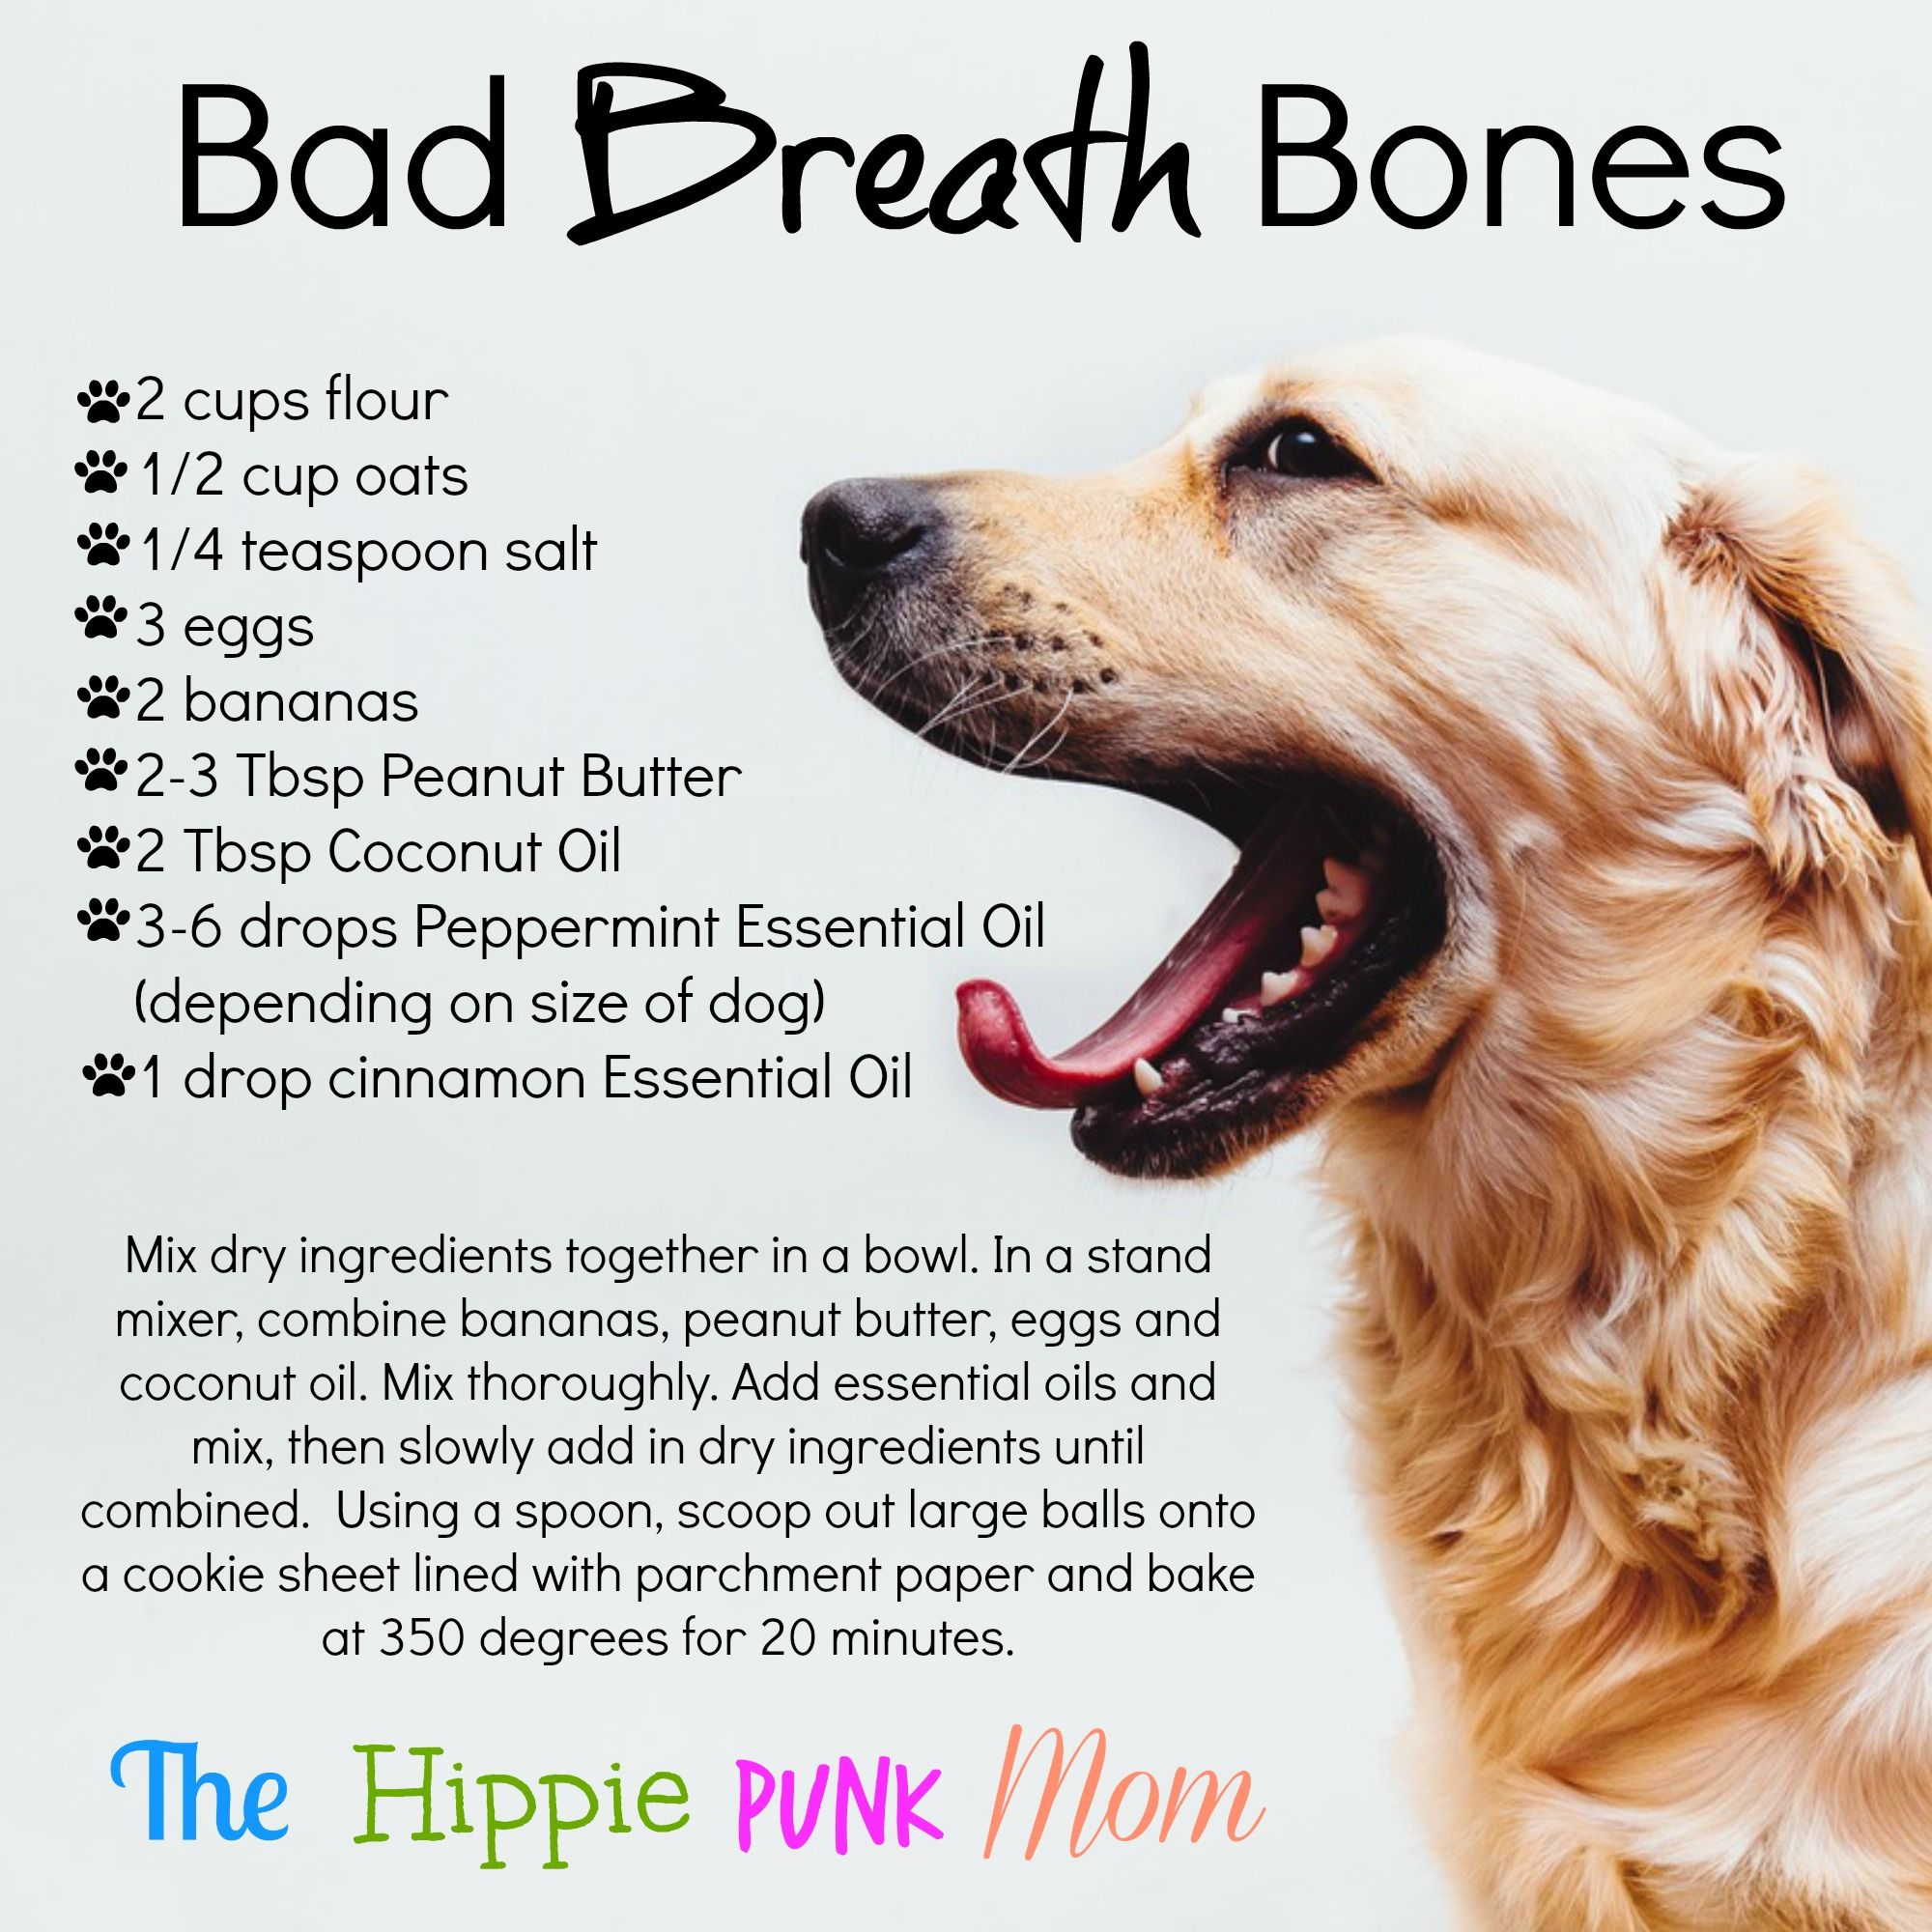 Homeade Dog Treats For Bad Breath